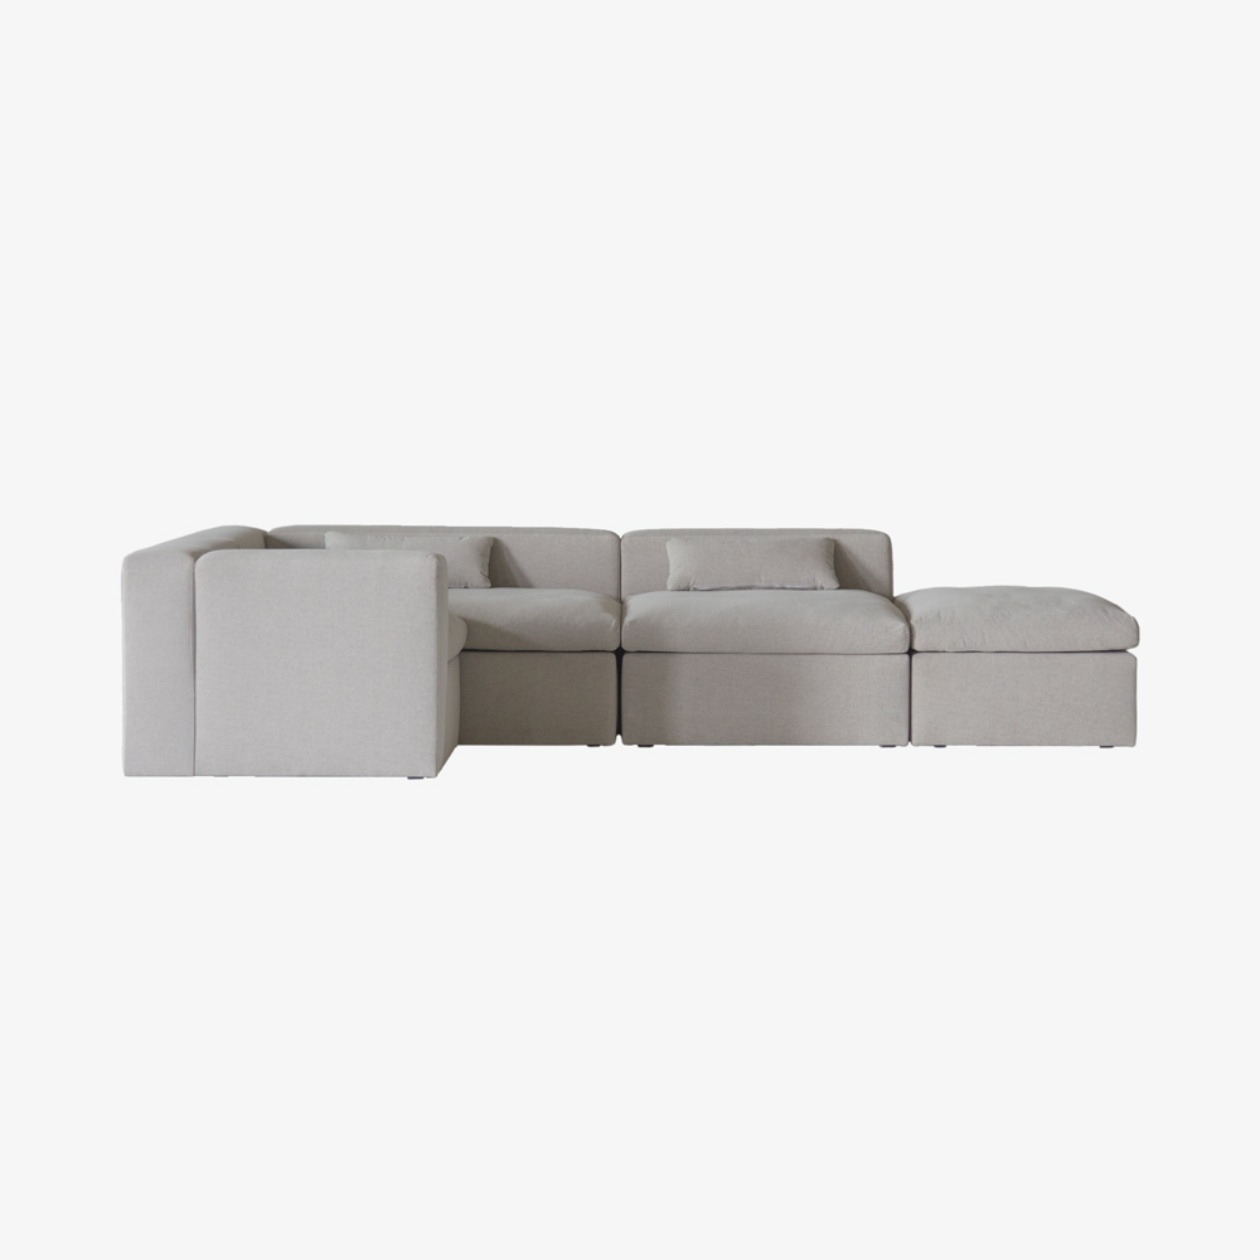 TIMELESS SOFT SOFA A+B+C+D